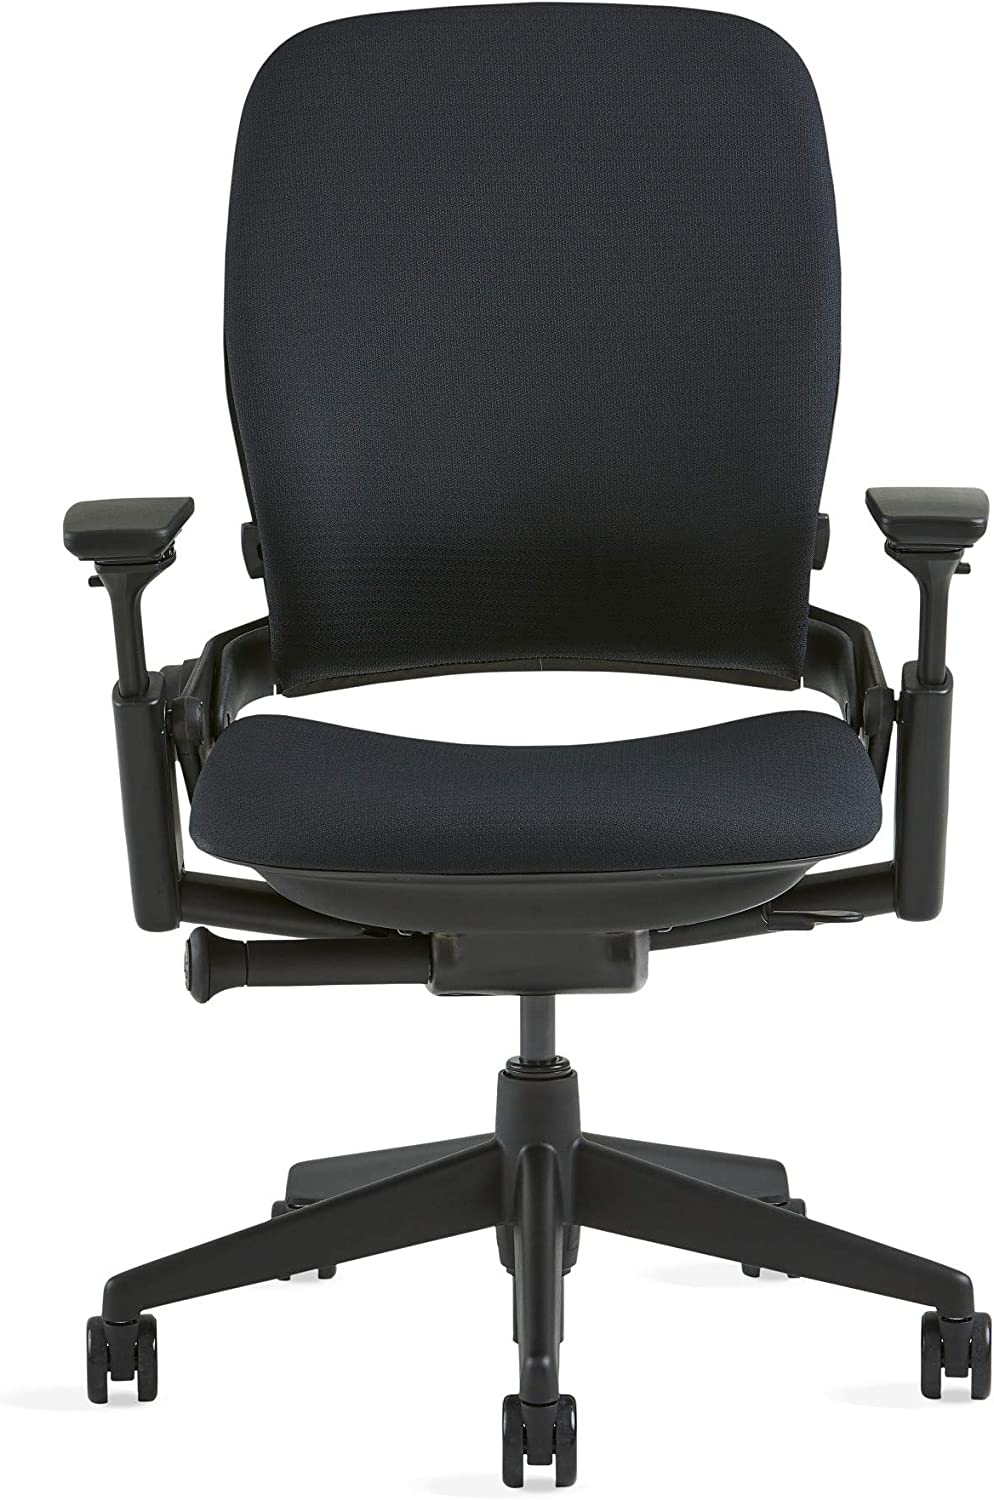 71VqjaTGRXL. AC SL1500 - What is The Best Computer Chair For Long Hours Sitting? [Comfortable and Ergonomic] - ChairPicks